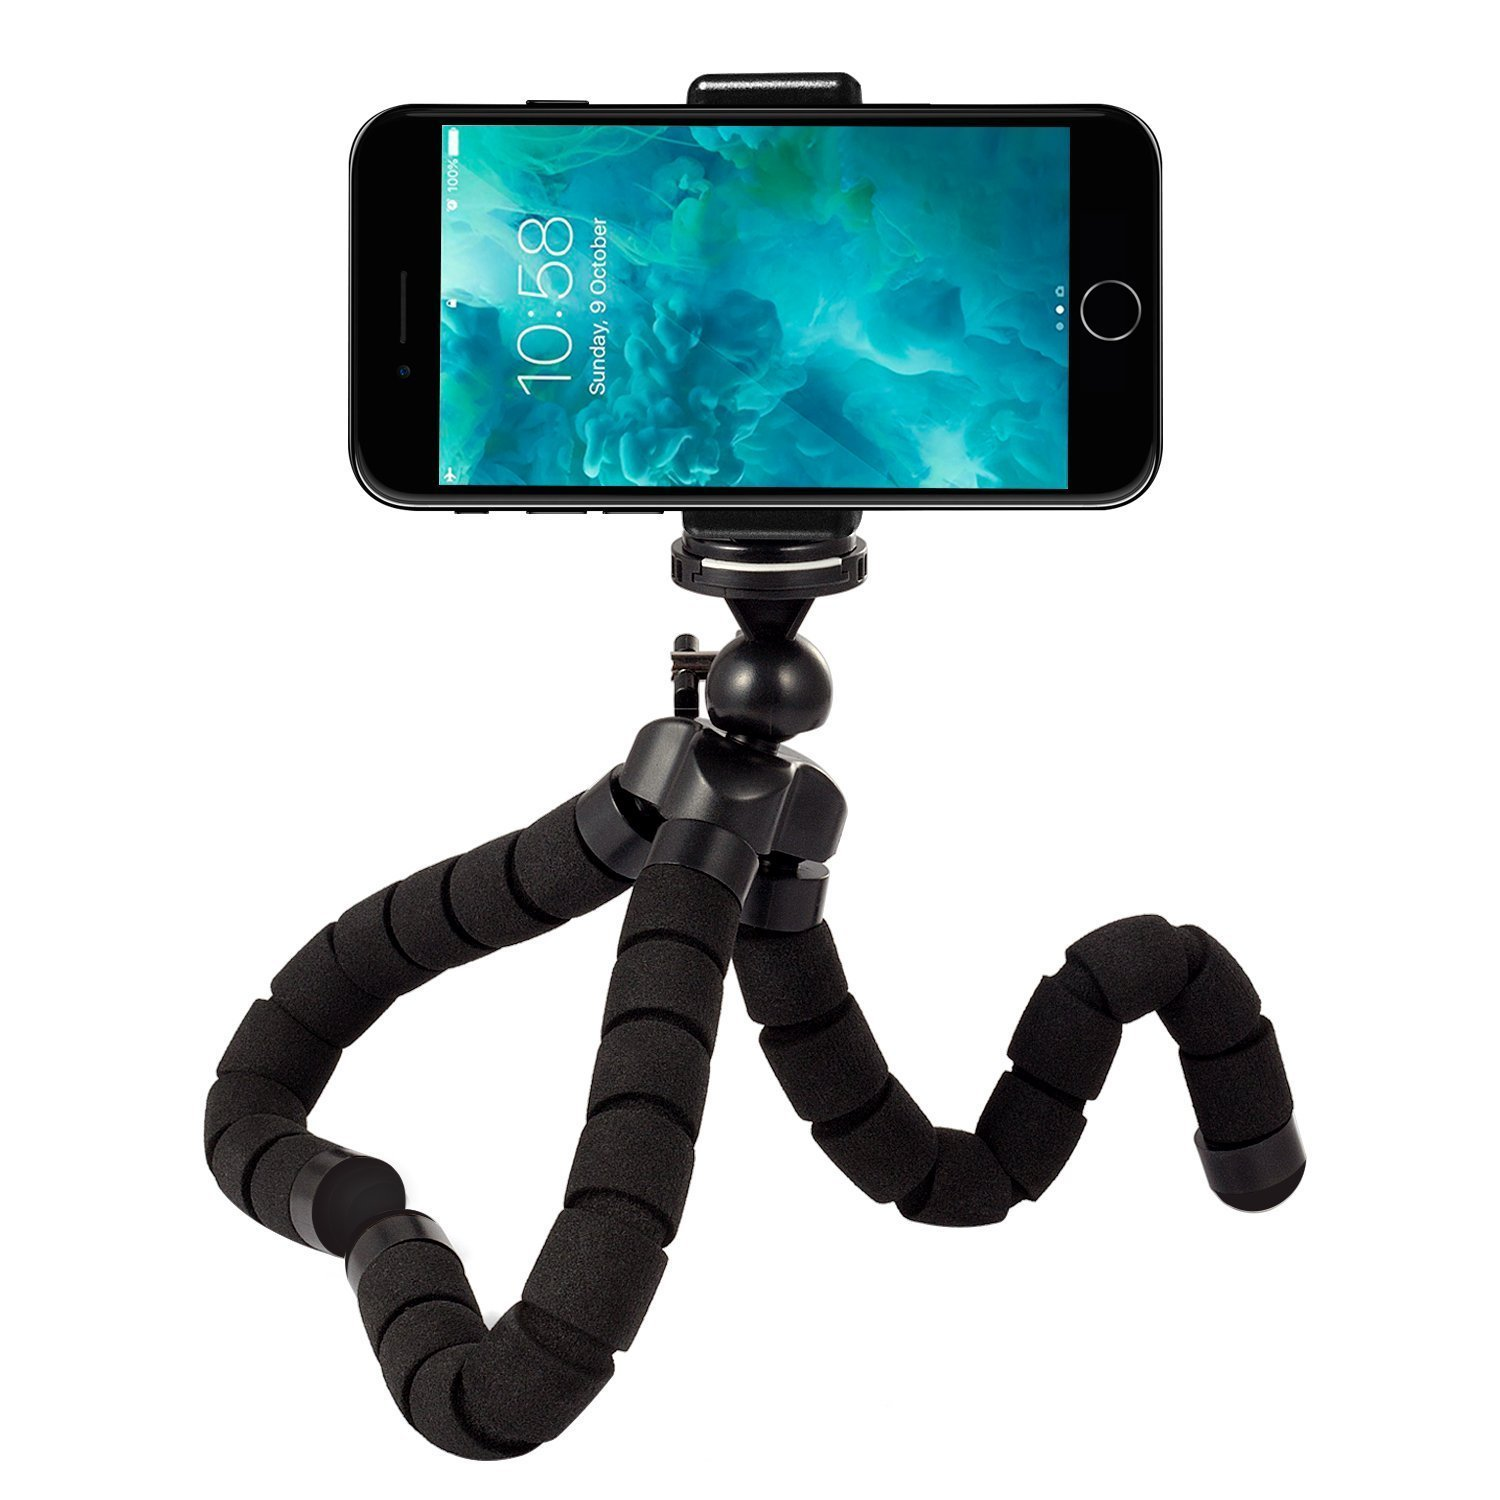 How To Make A Quick And Easy Professional Video For Linkedin Tiny Efficient High Power Led Camera Flash Solutions Cell Phone Dont Hold Your Shake Is Incredibly Annoying Simple Mini Tripod Will Keep Shot Stable Rhodesy Rt 01 Octopus Style Portable